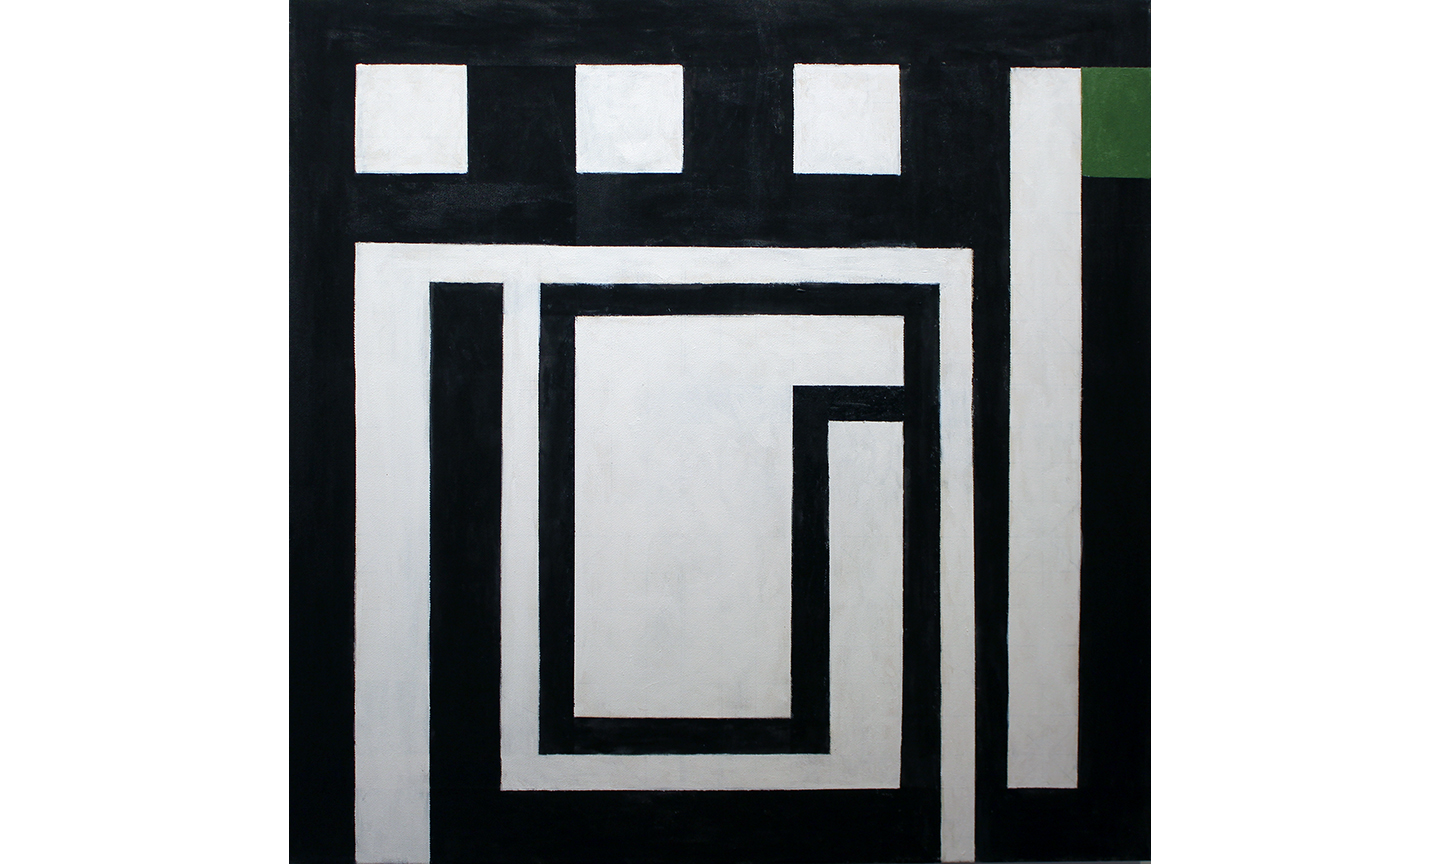 Ludwig, A Touch of Green, 2016, Acrylic on Canvas, 35 x 35 inches, $2,500.jpg